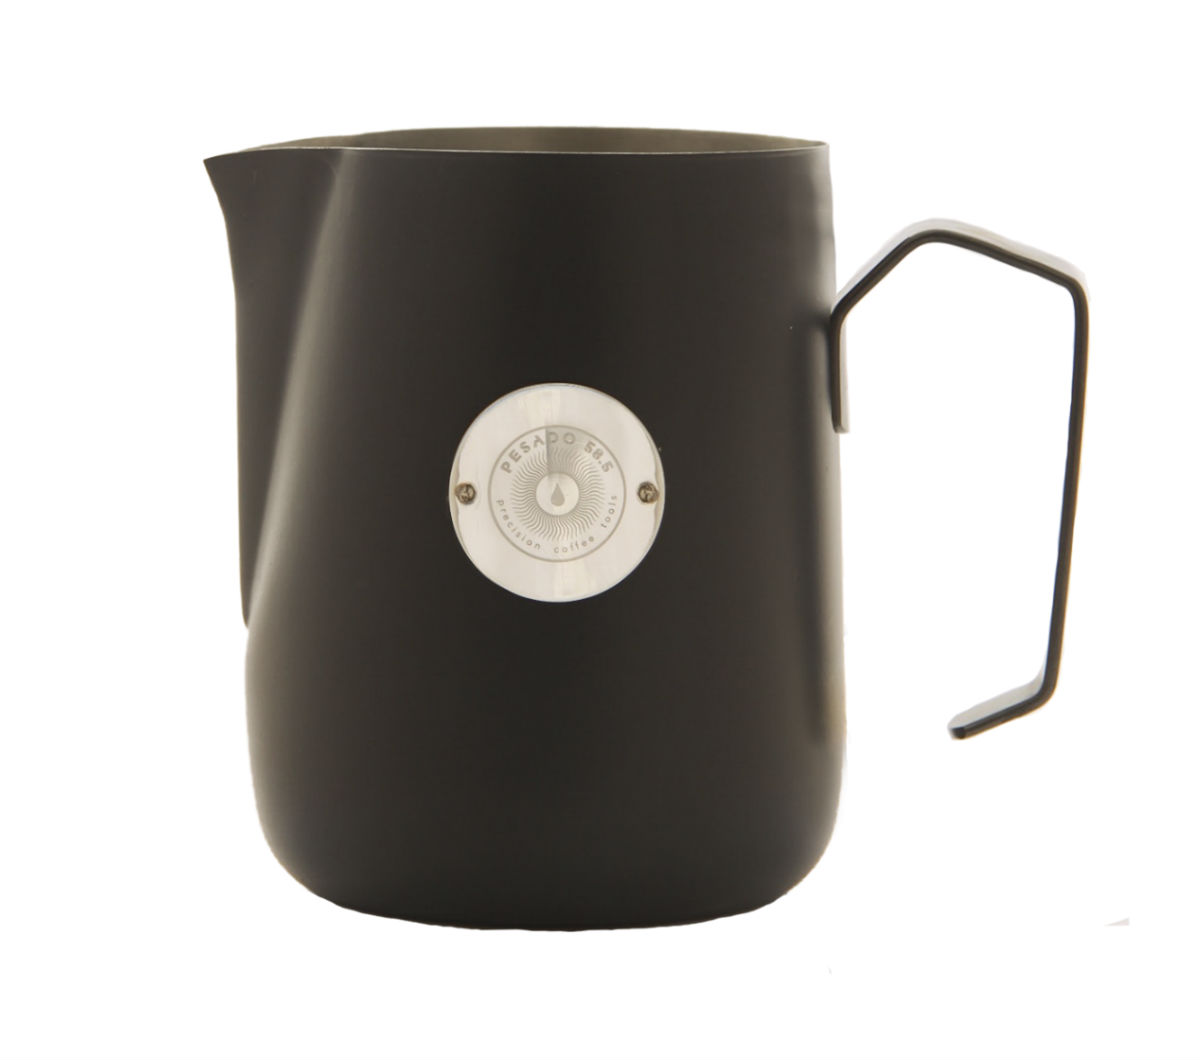 PESADO Milk Pitcher - Classic Black